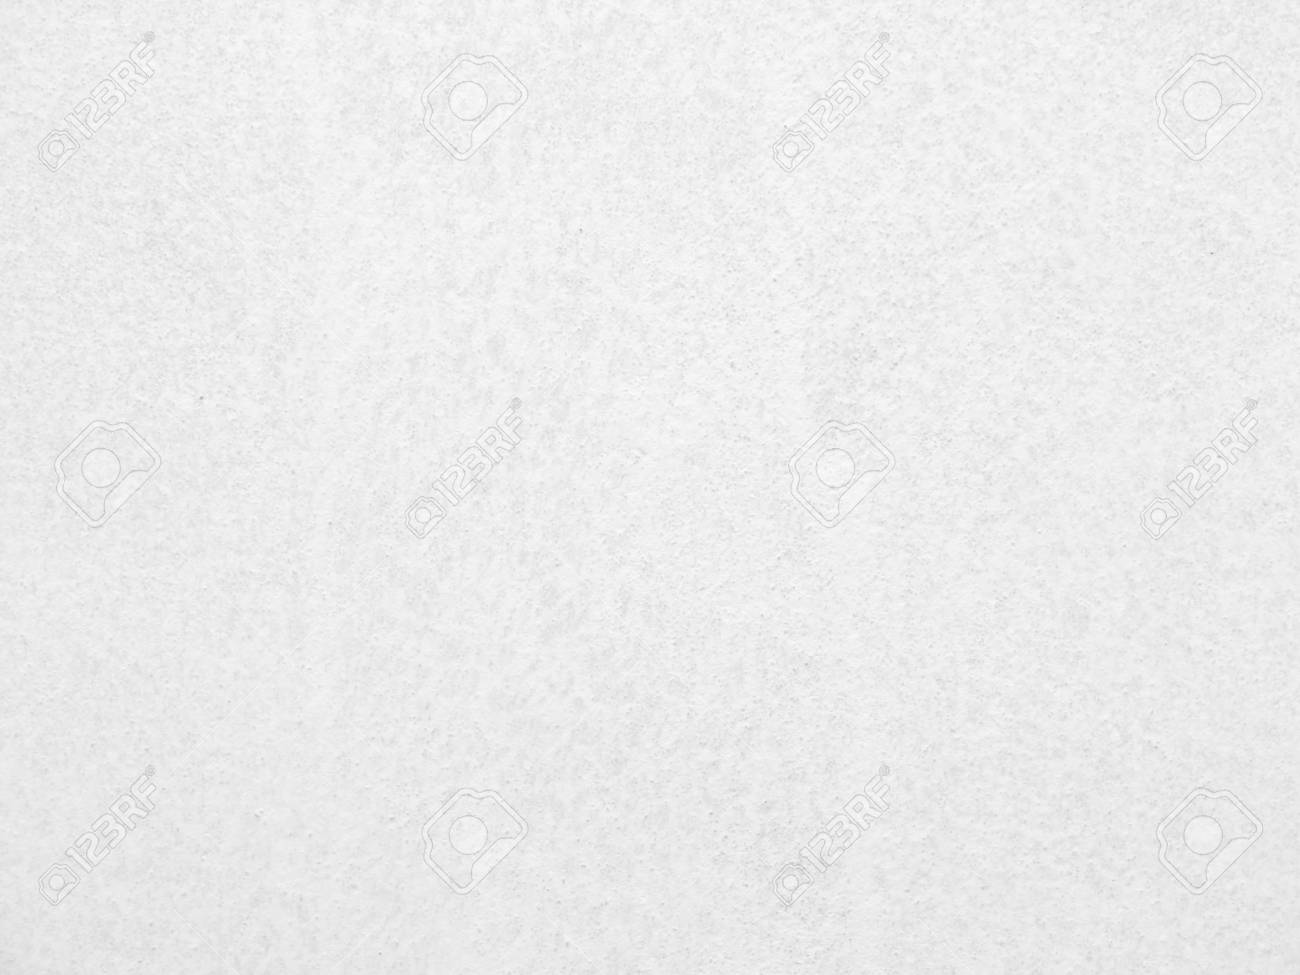 white wall texture background - 60164304